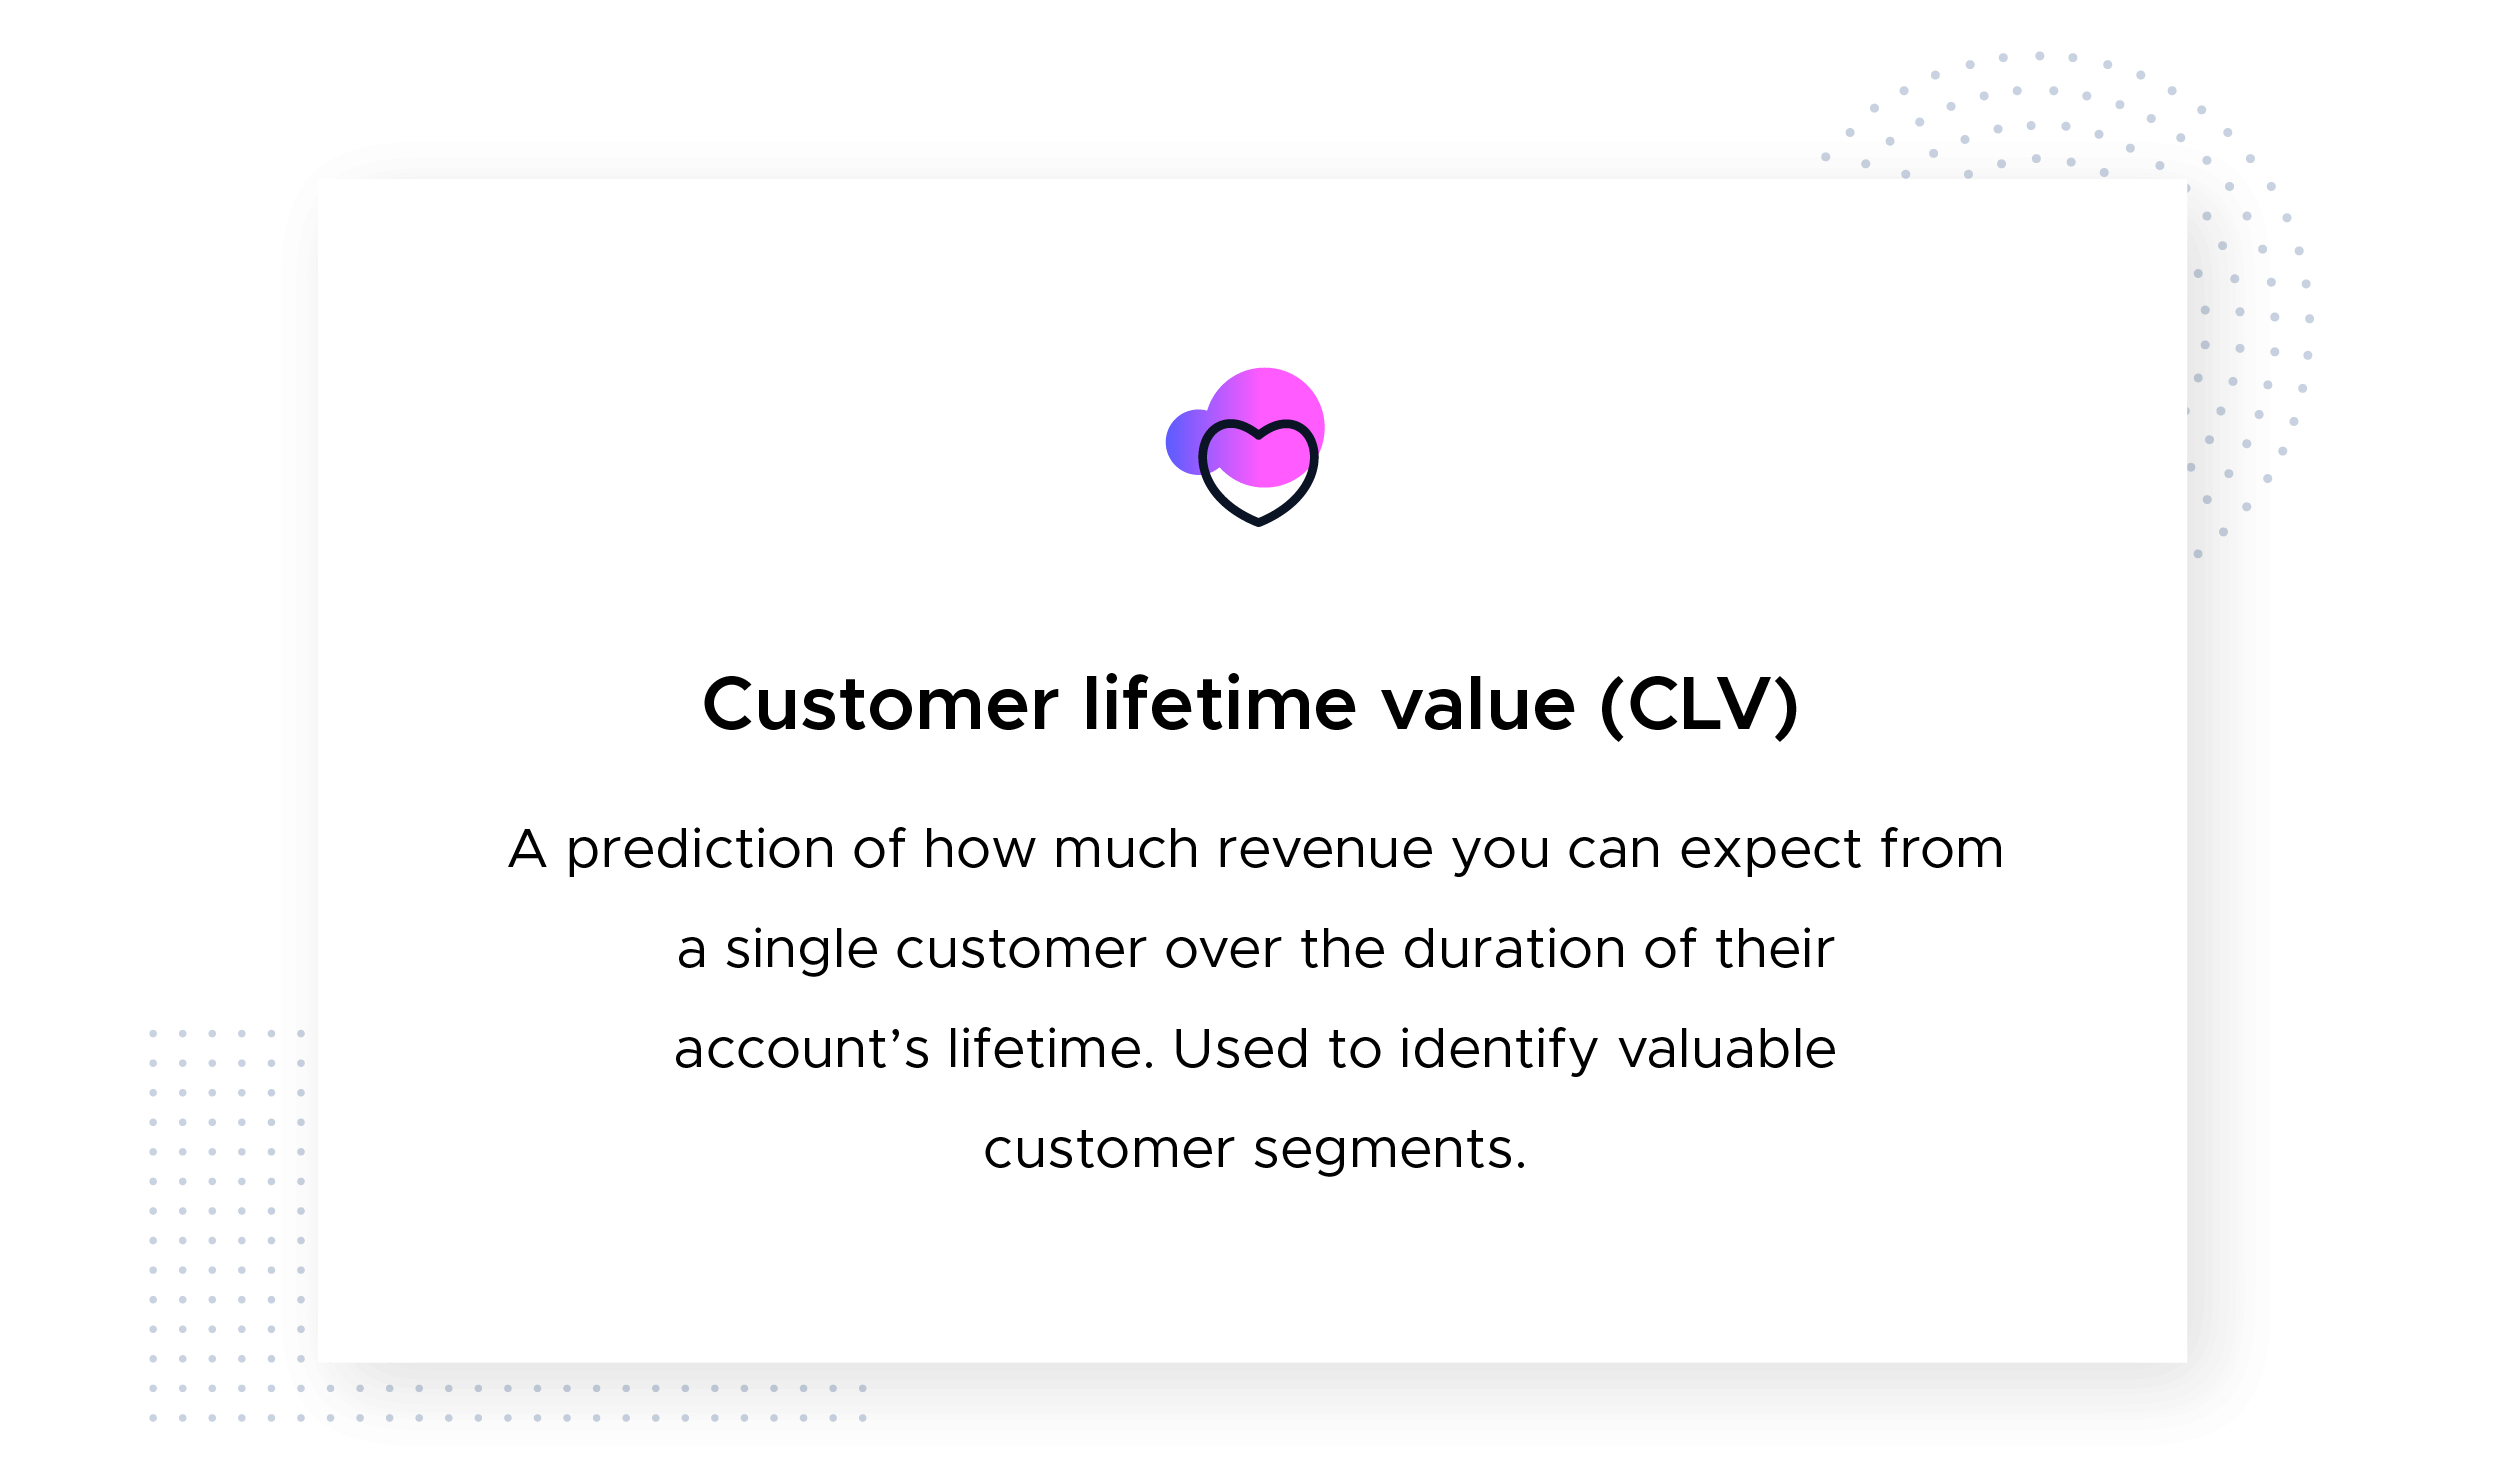 Customer lifetime value (CLV) definition with icon from the Product-Led Growth Collective. This image defines customer lifetime value as a prediction of how much revenue you can expect from a single customer over the duration of their account's lifetime. Used to identify valuable customer segments.